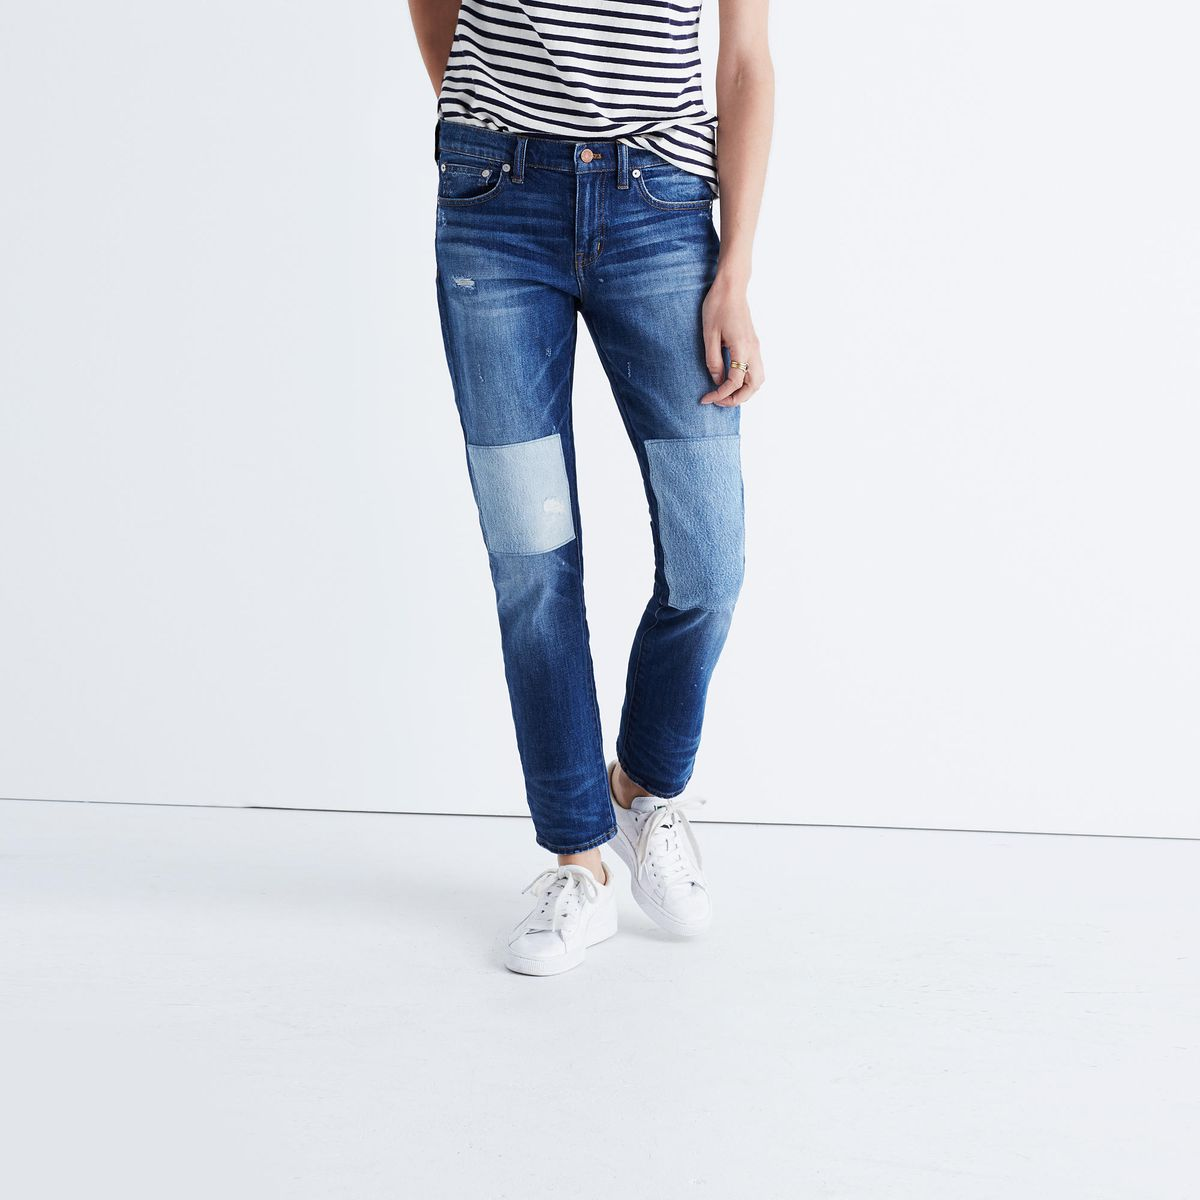 patched jeans from madewell